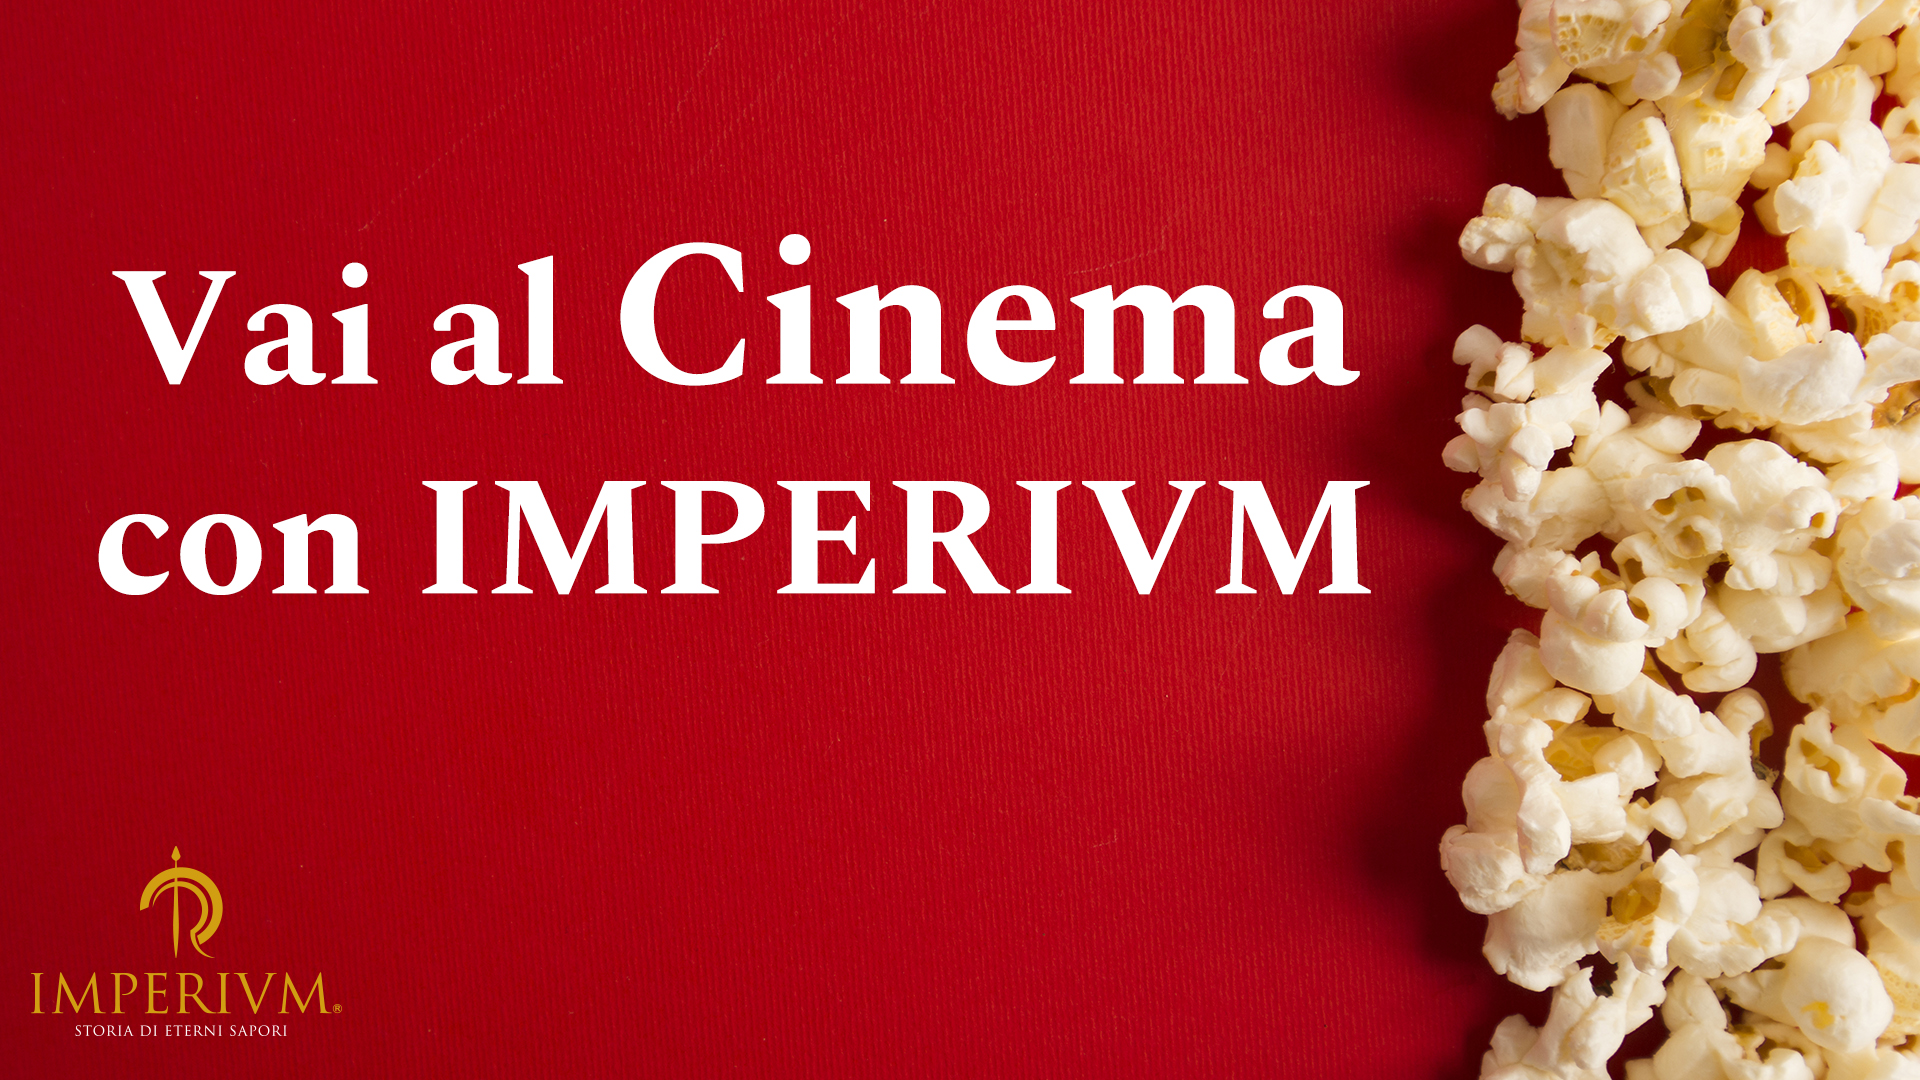 Imperivm ti porta al Cinema